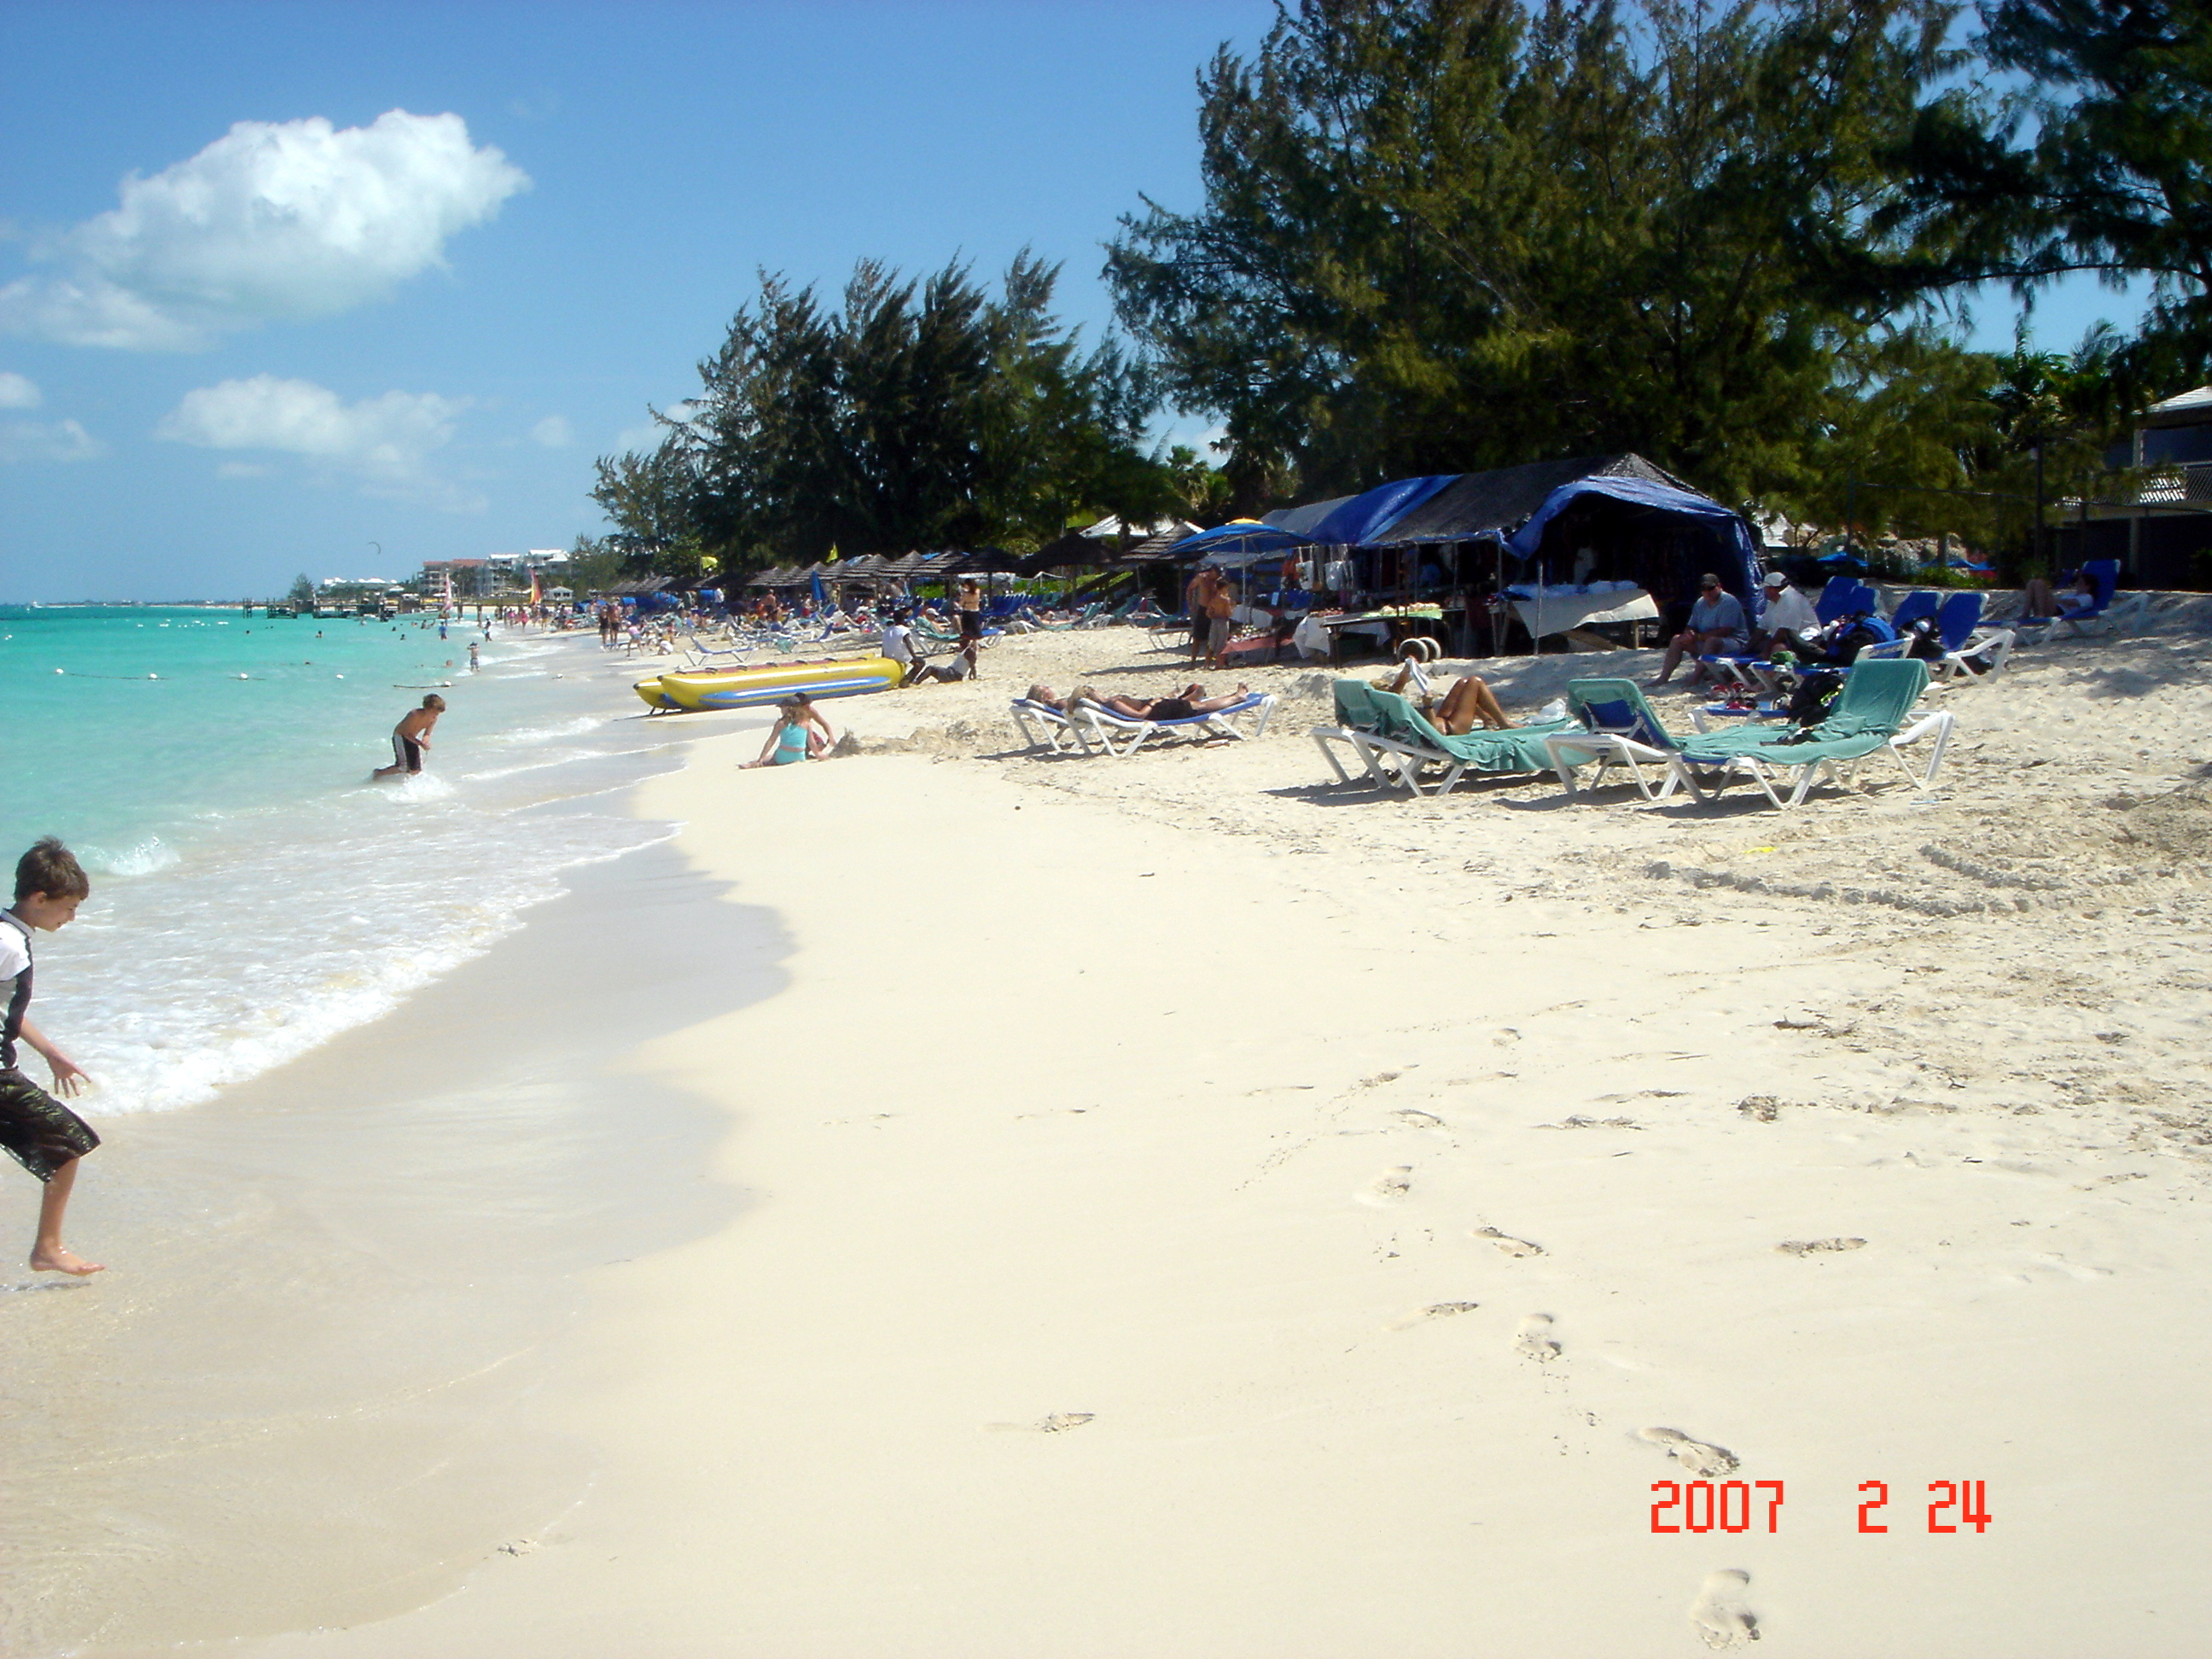 Beaches2007Feb24-23.jpg